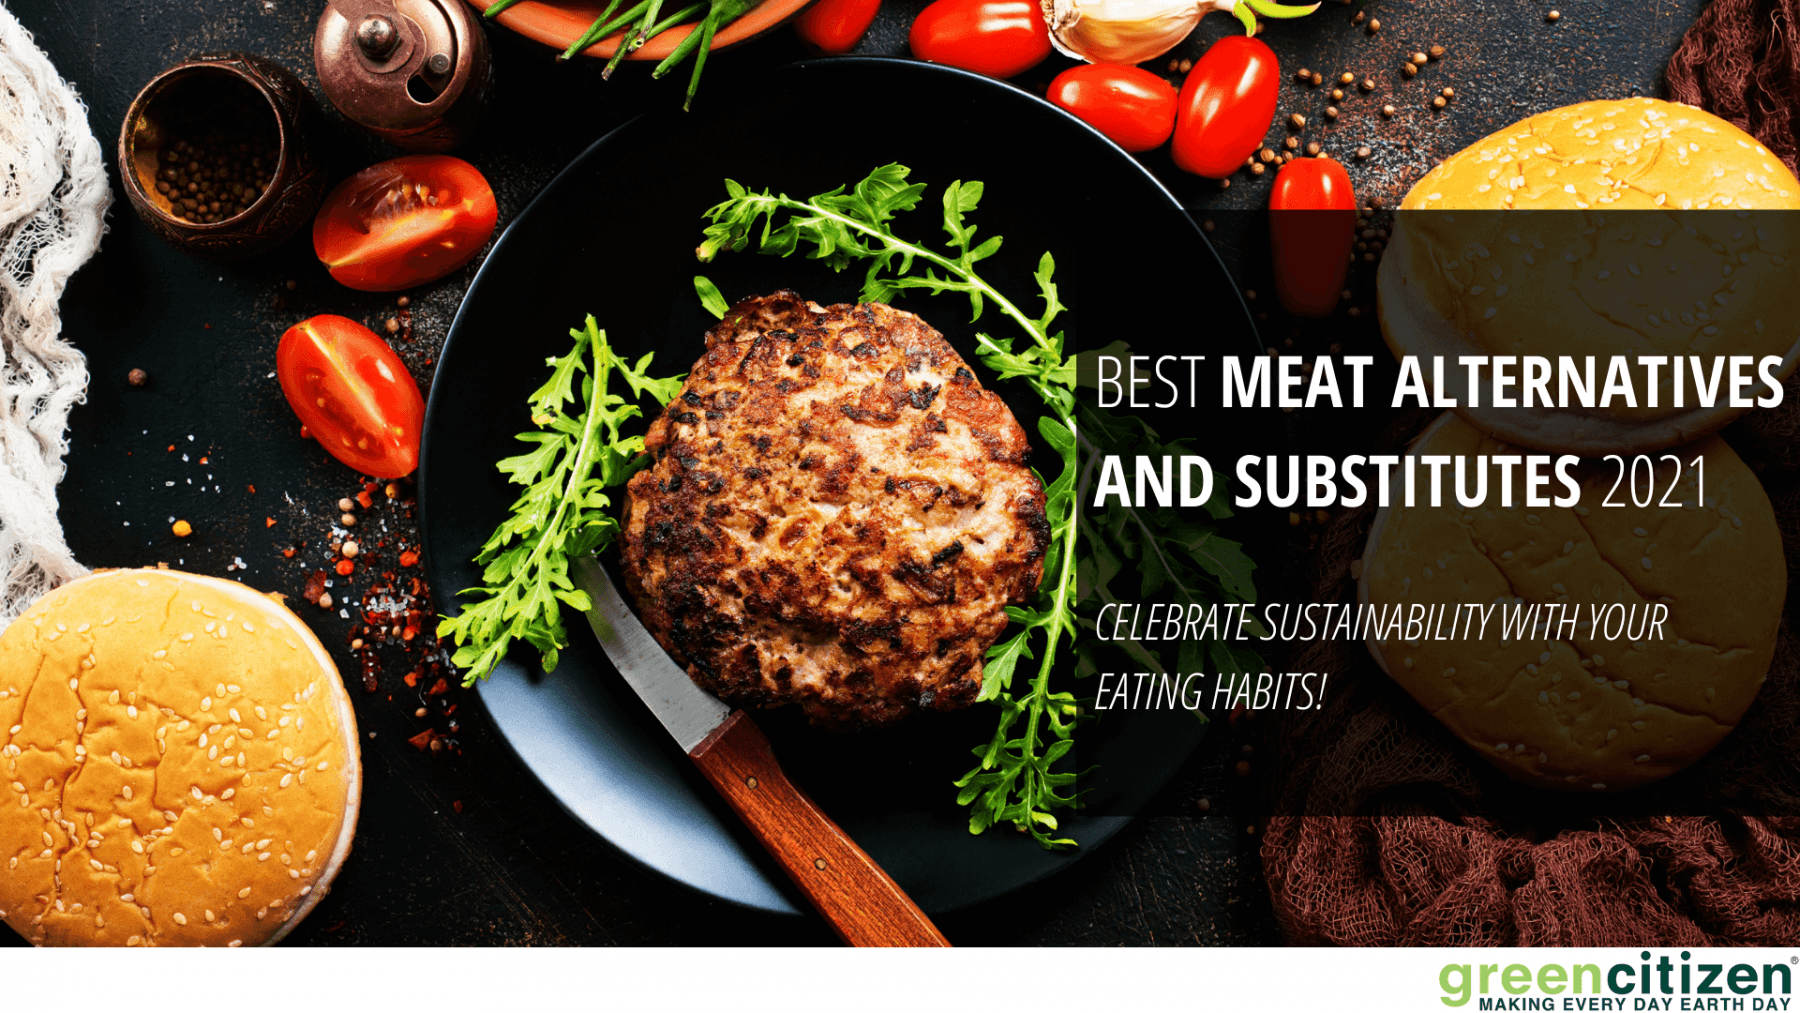 Best Meat Alternatives and Substitutes 2021